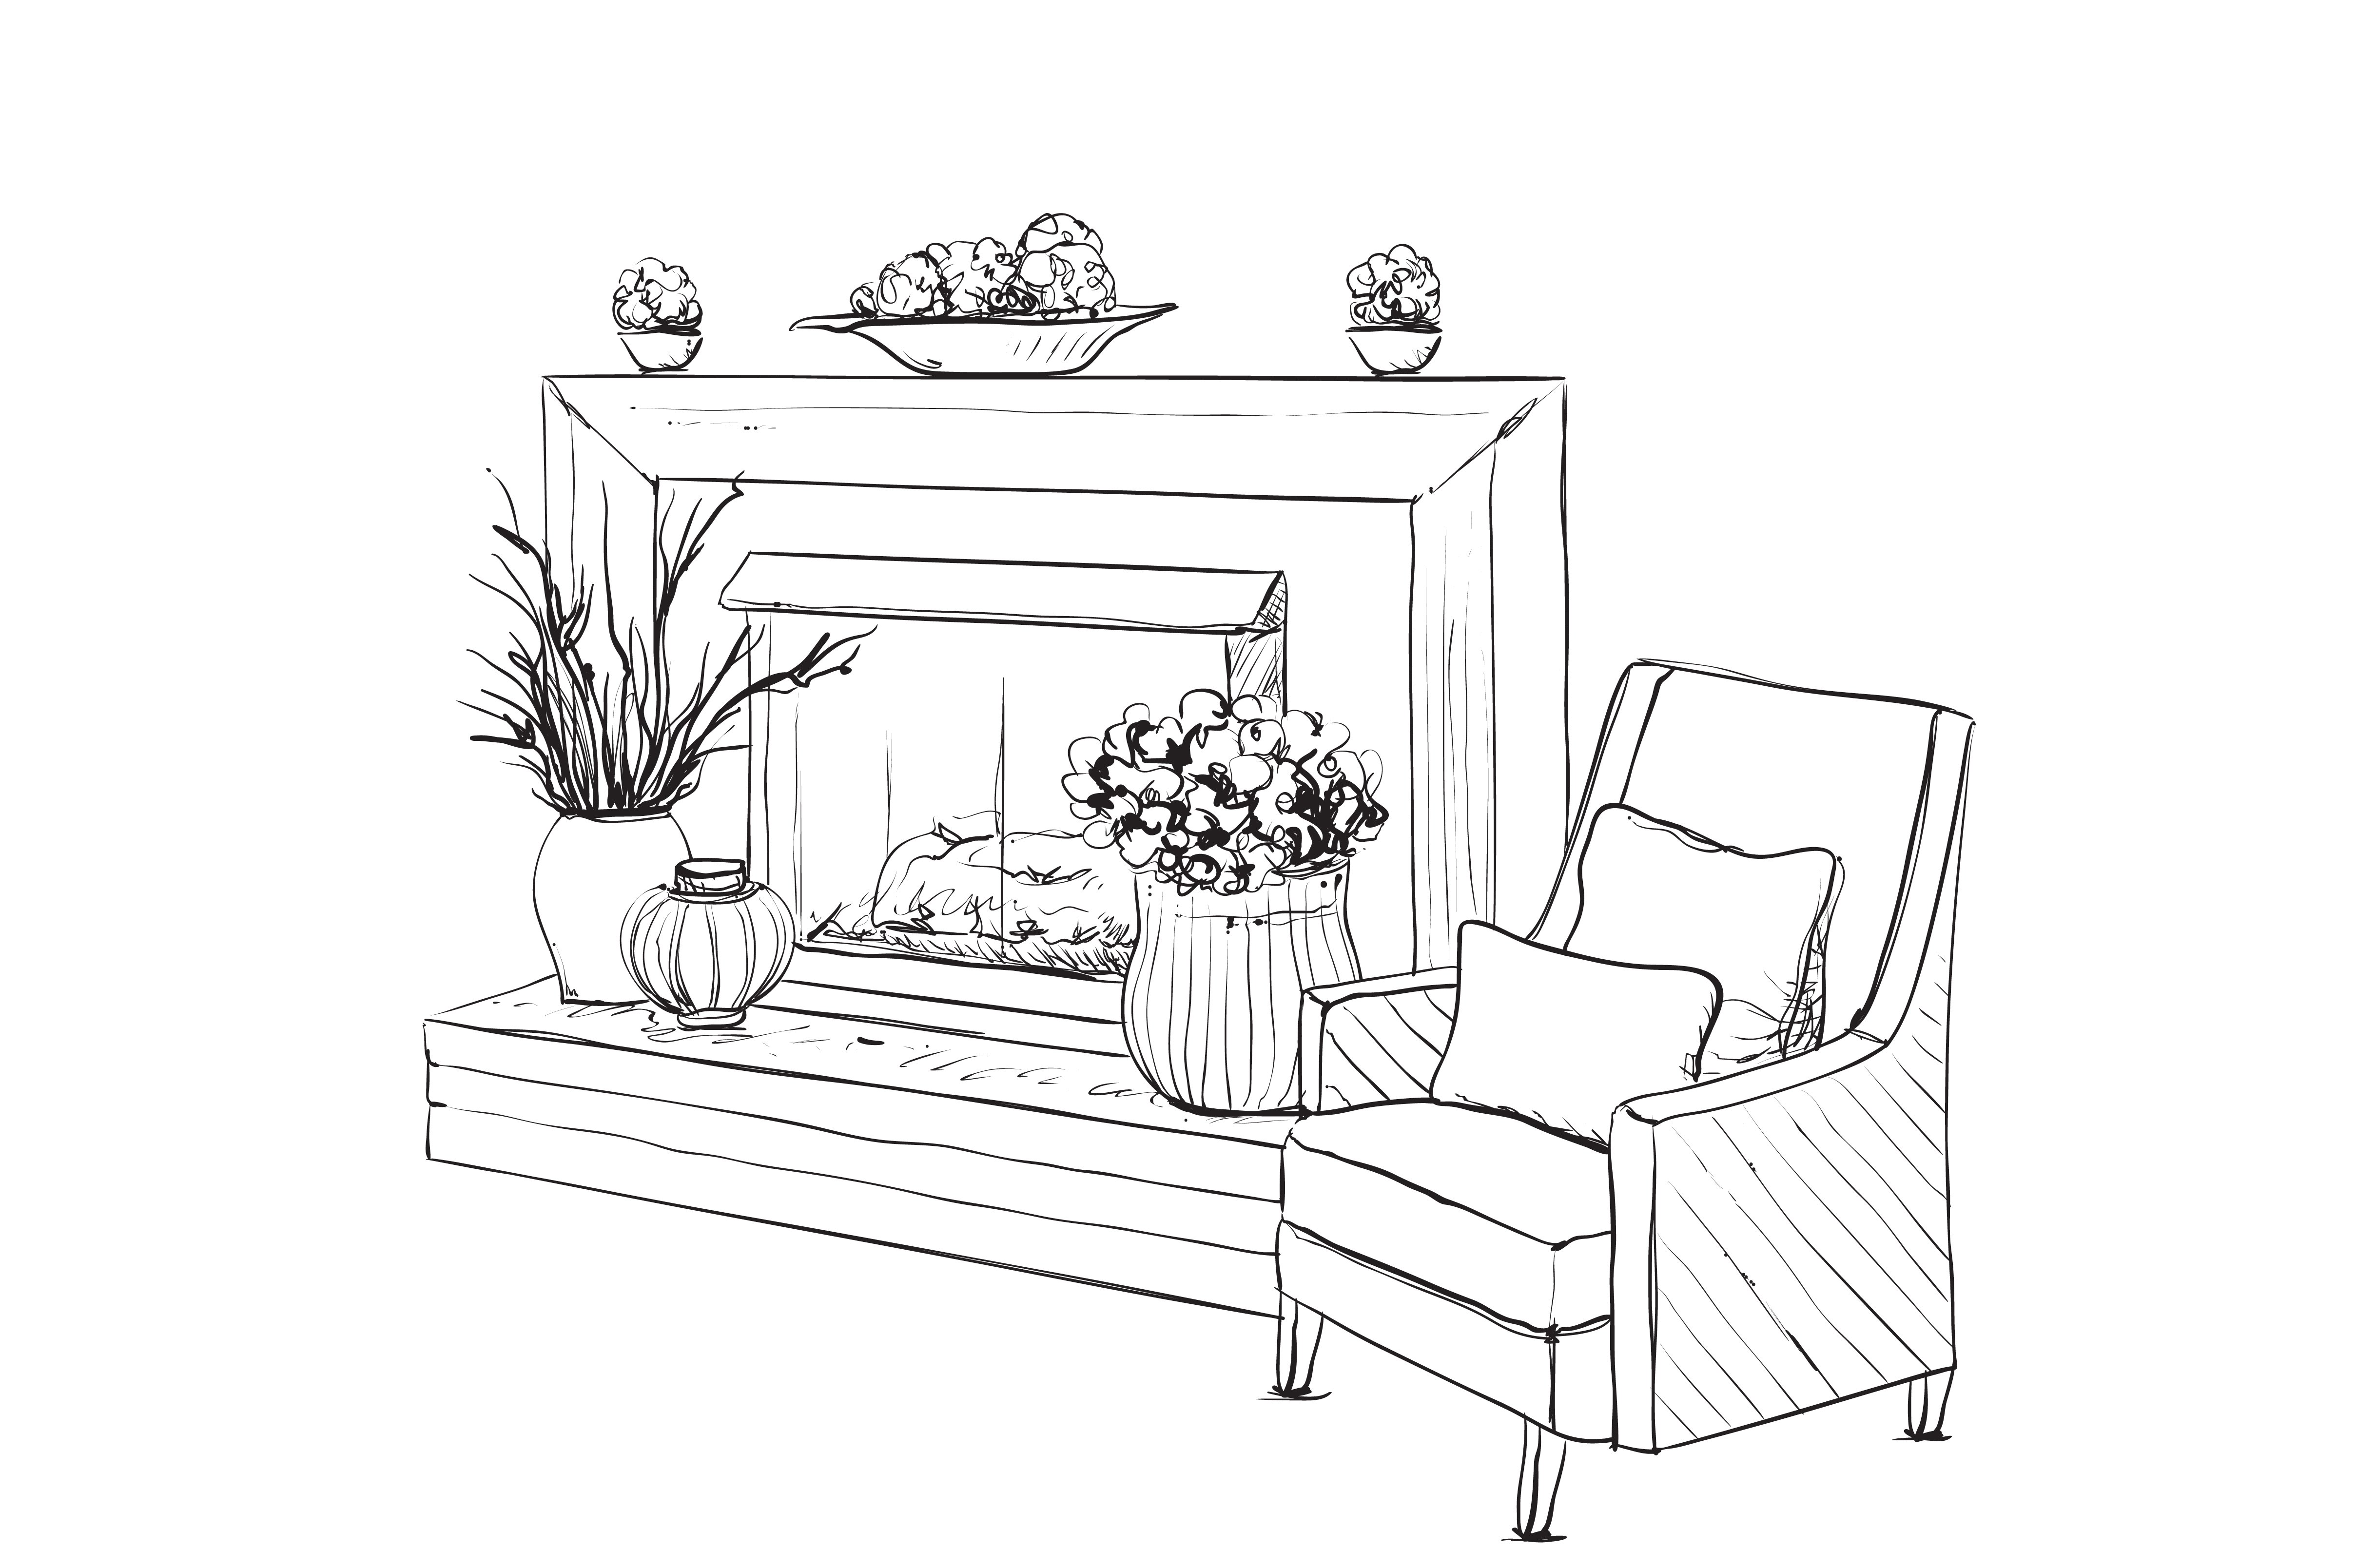 Interior sketch with fireplace ~ Illustrations ~ Creative